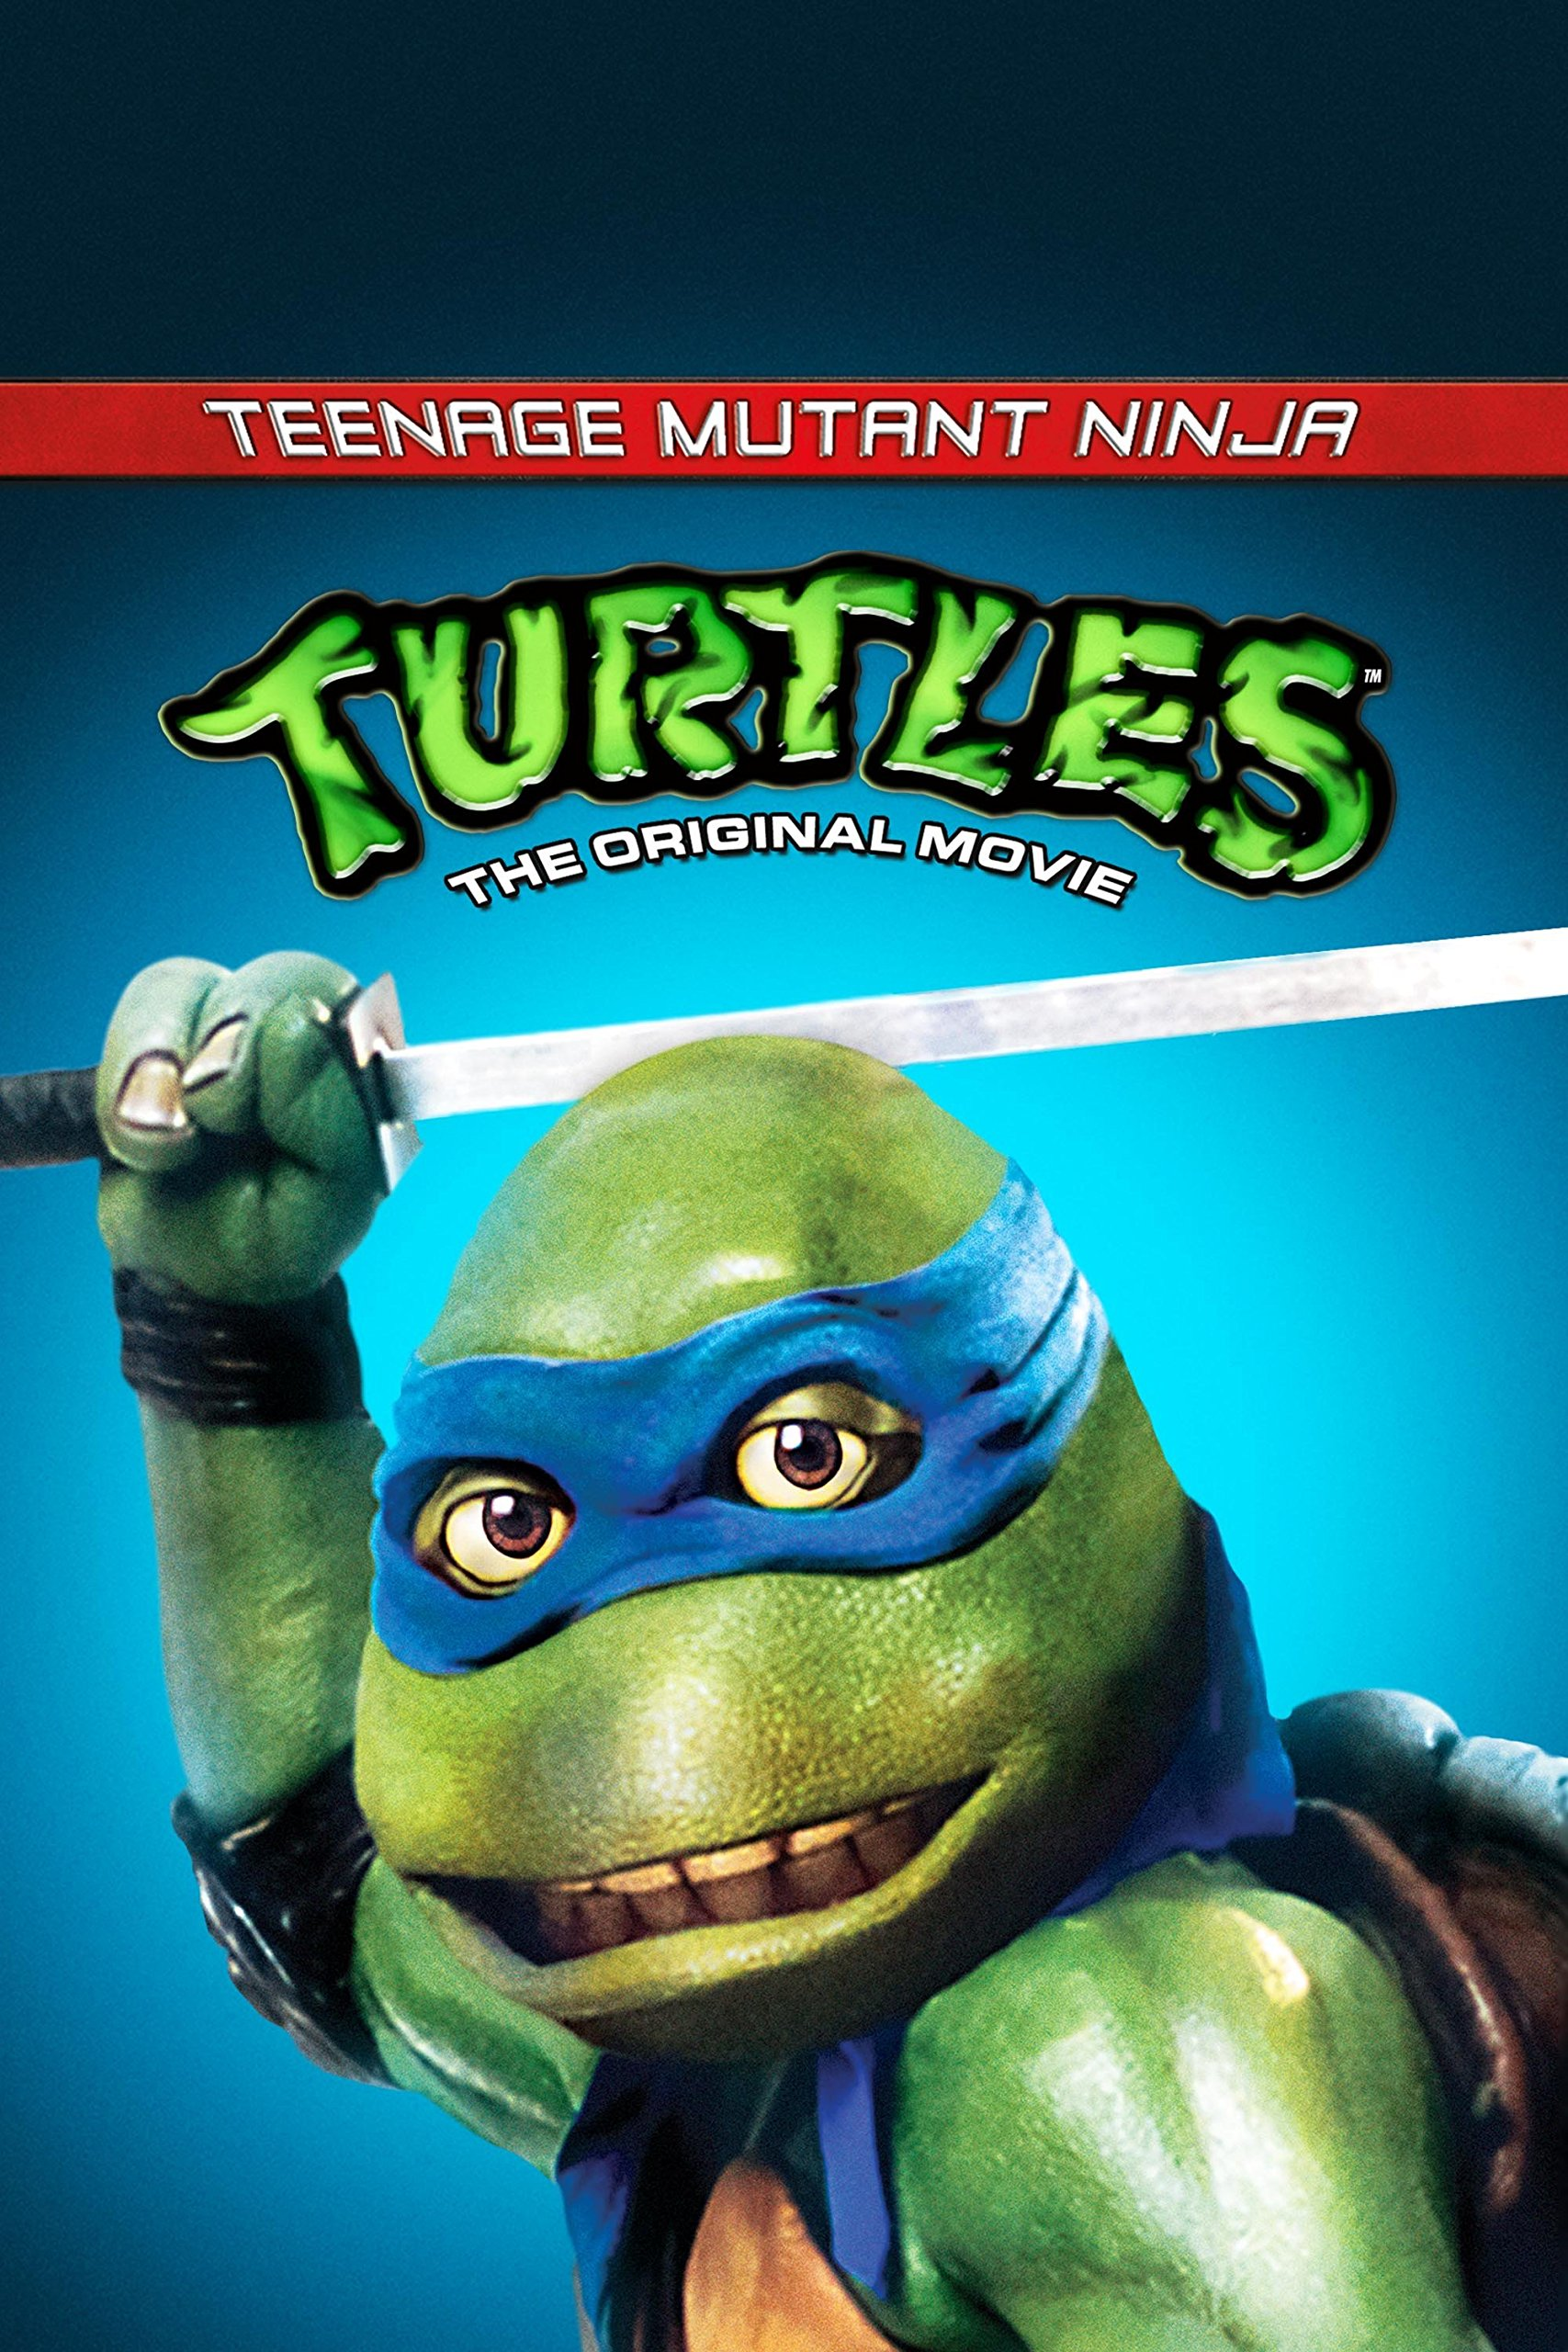 Amazon.com: Watch Teenage Mutant Ninja Turtles | Prime Video